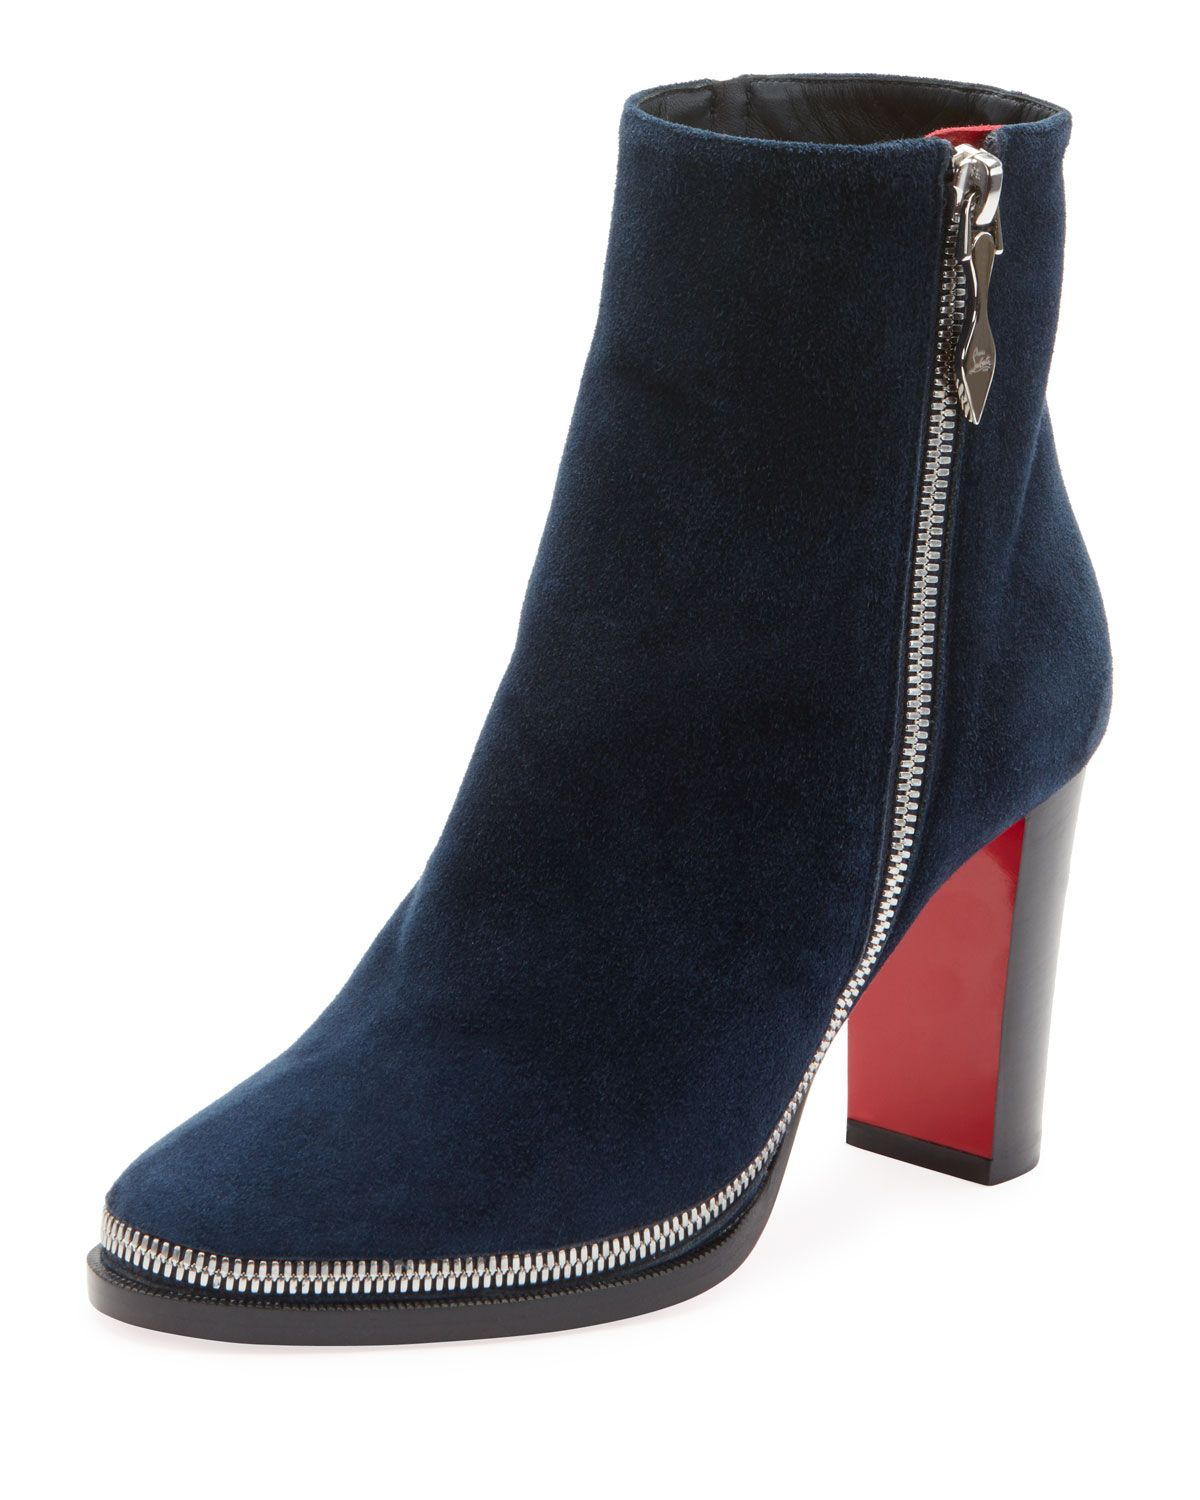 low priced 95b42 d9fb1 CHRISTIAN LOUBOUTIN TELEZIP SUEDE RED SOLE BOOTIES ...